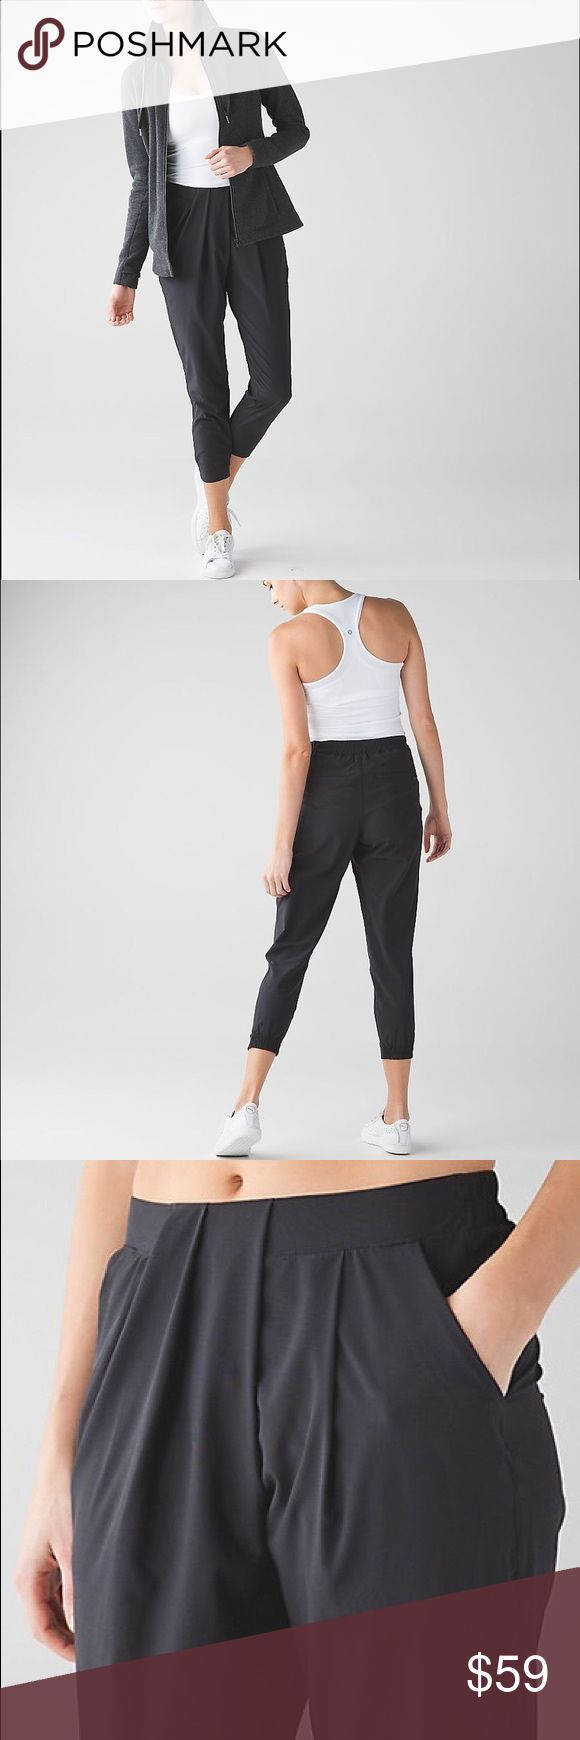 Lululemon Black Crop pants -SZ 10 Excellent condition, these high waisted Crop pants are perfect for travel, work, or just running errands. Have extra secure pocket for phone or money. Super comfy and light weight. Wore these on a flight to SE Asia and was so happy with them. Very flattering. Size 10. Hard to find! lululemon athletica Pants Track Pants & Joggers